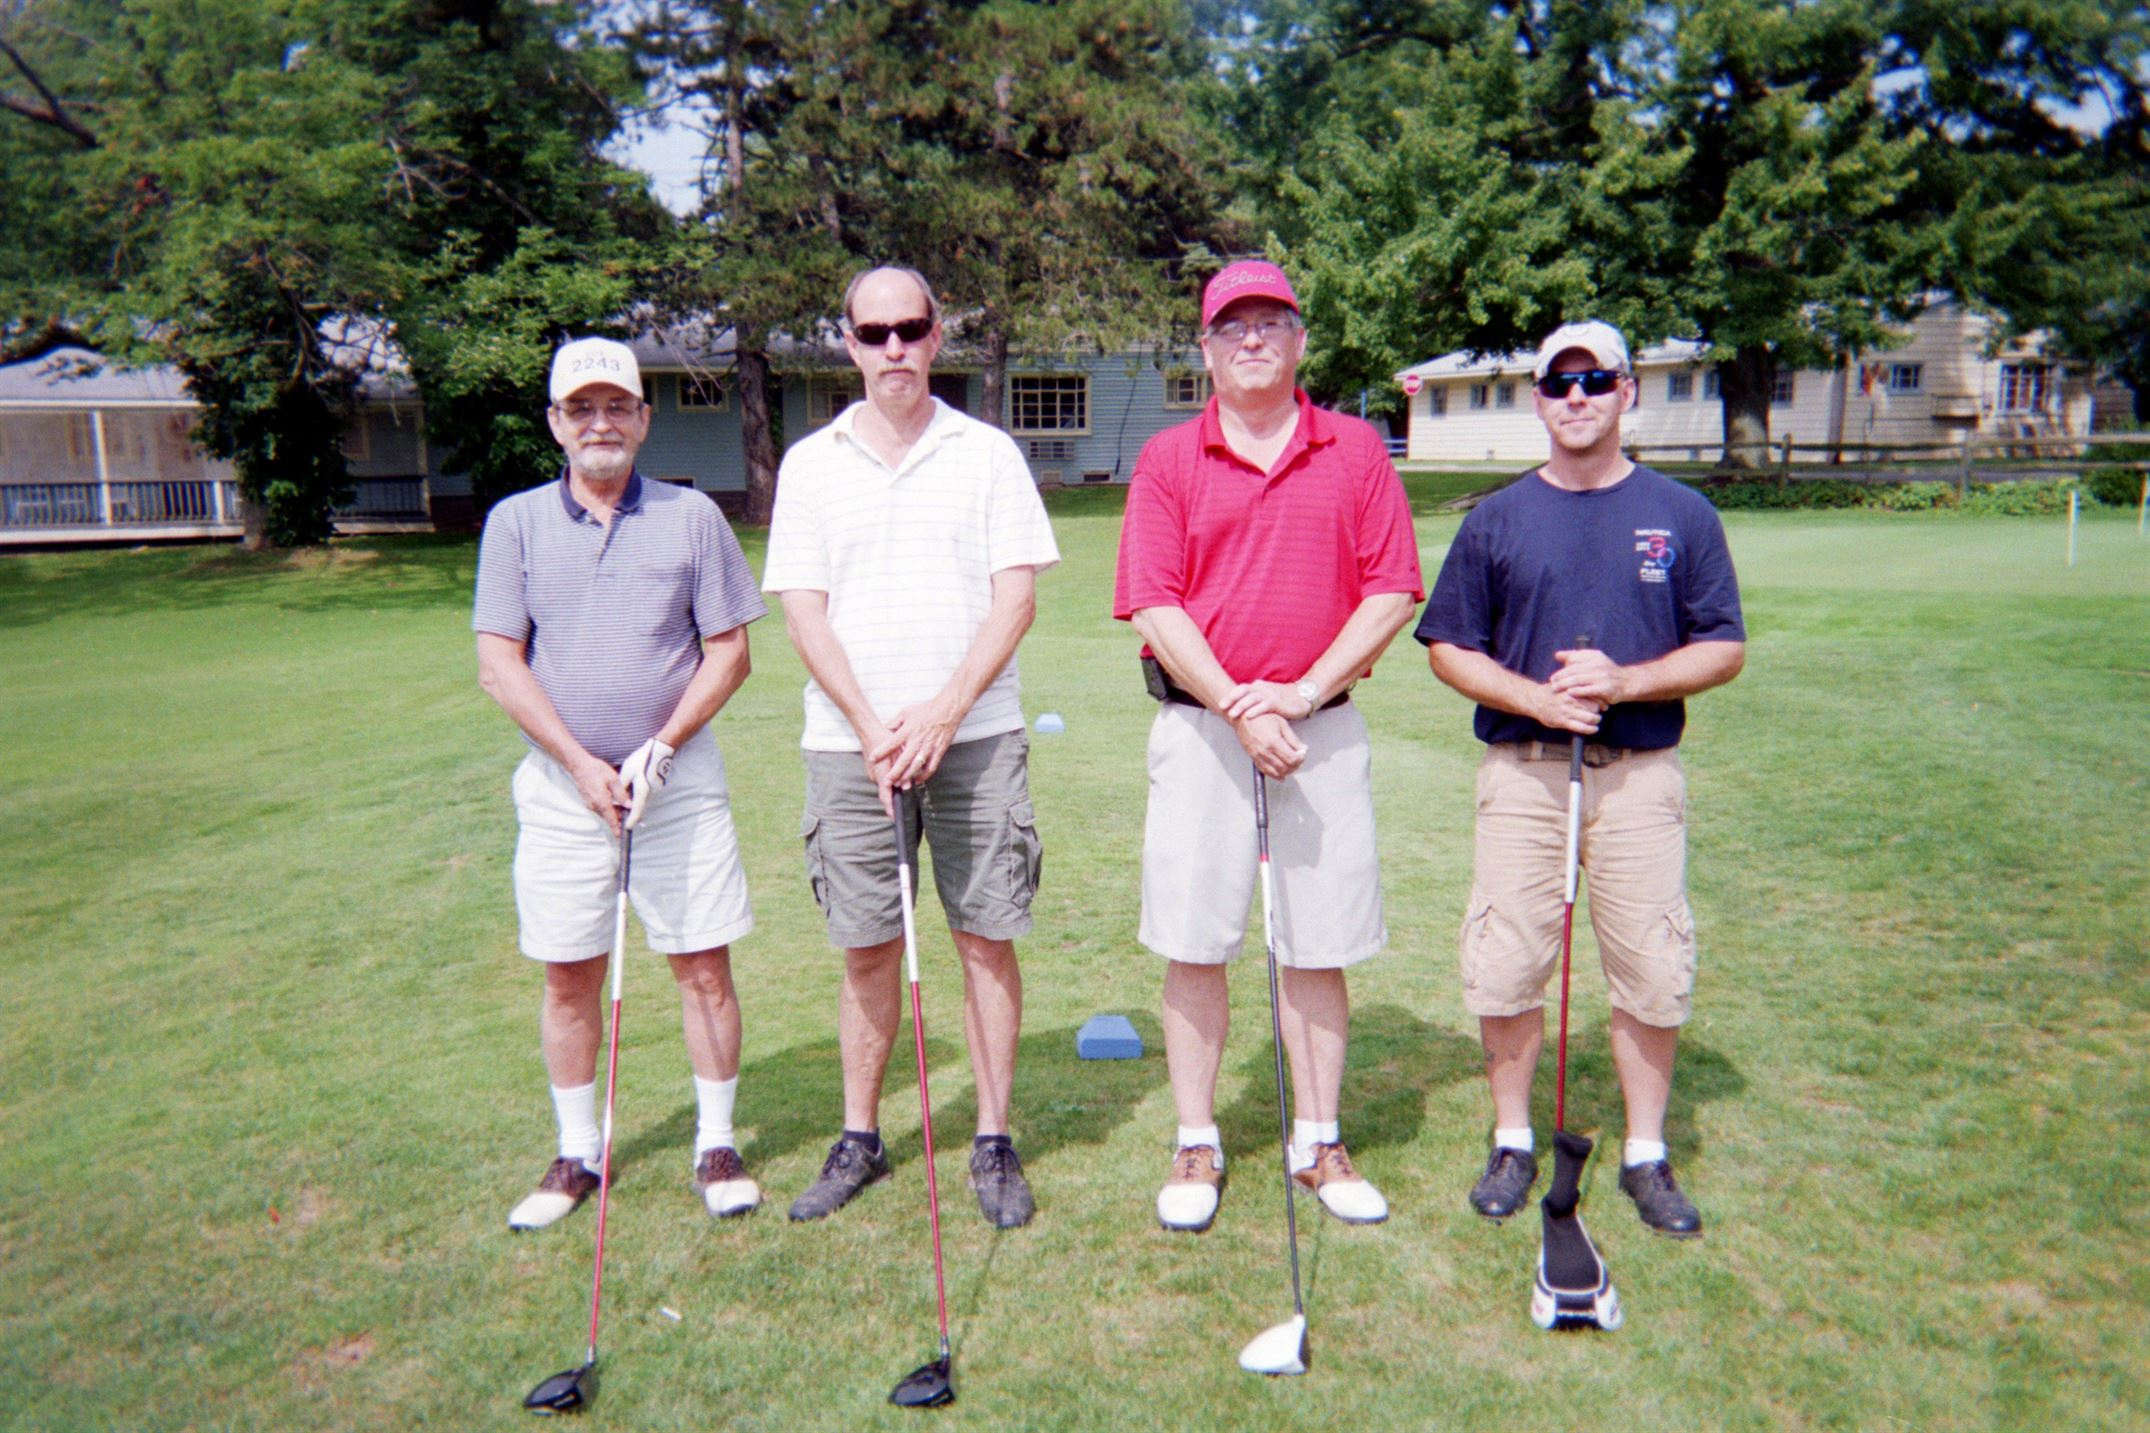 Dick Goff, Randy Goff, Doug Bright, Steve Reigert